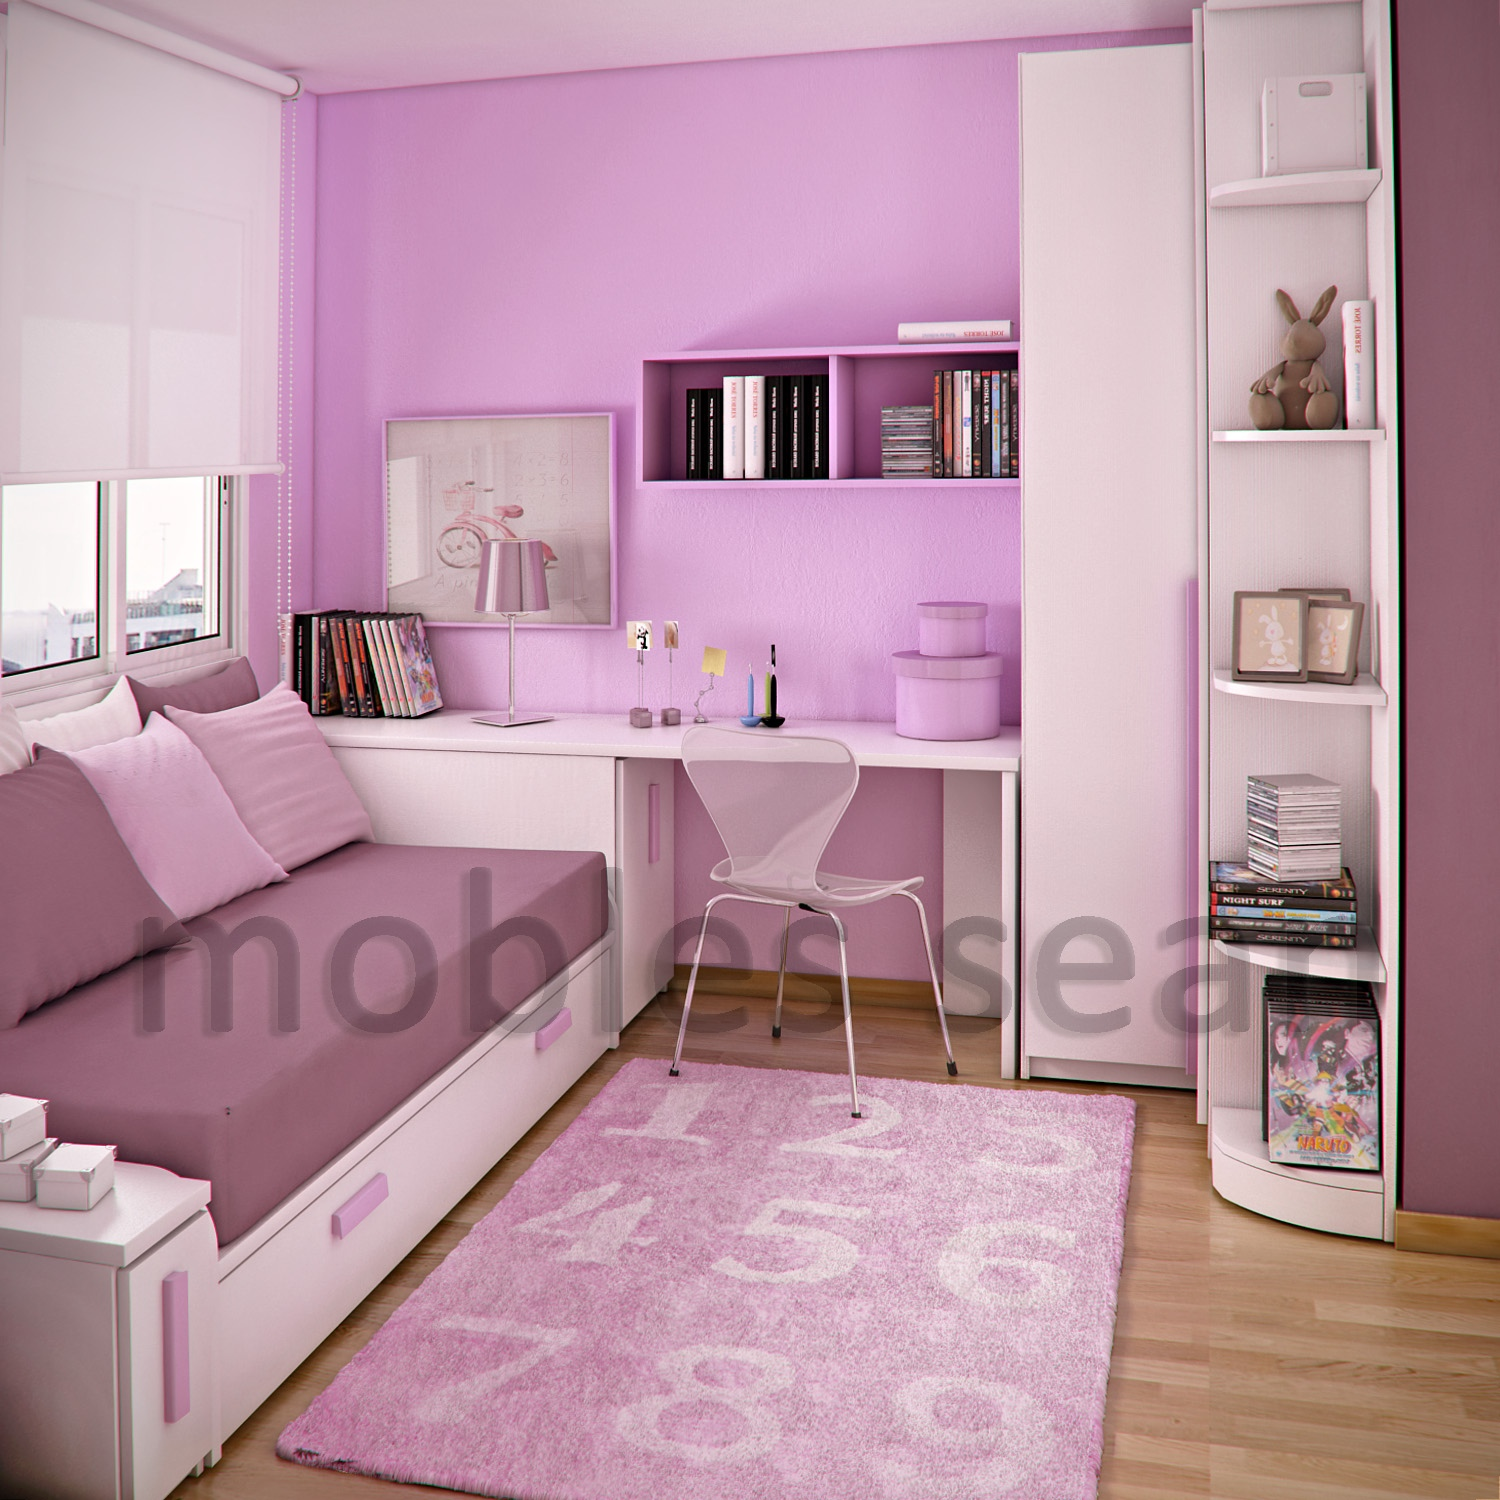 Http Www Home Designing Com 2012 02 Space Saving Designs For Small Kids Rooms